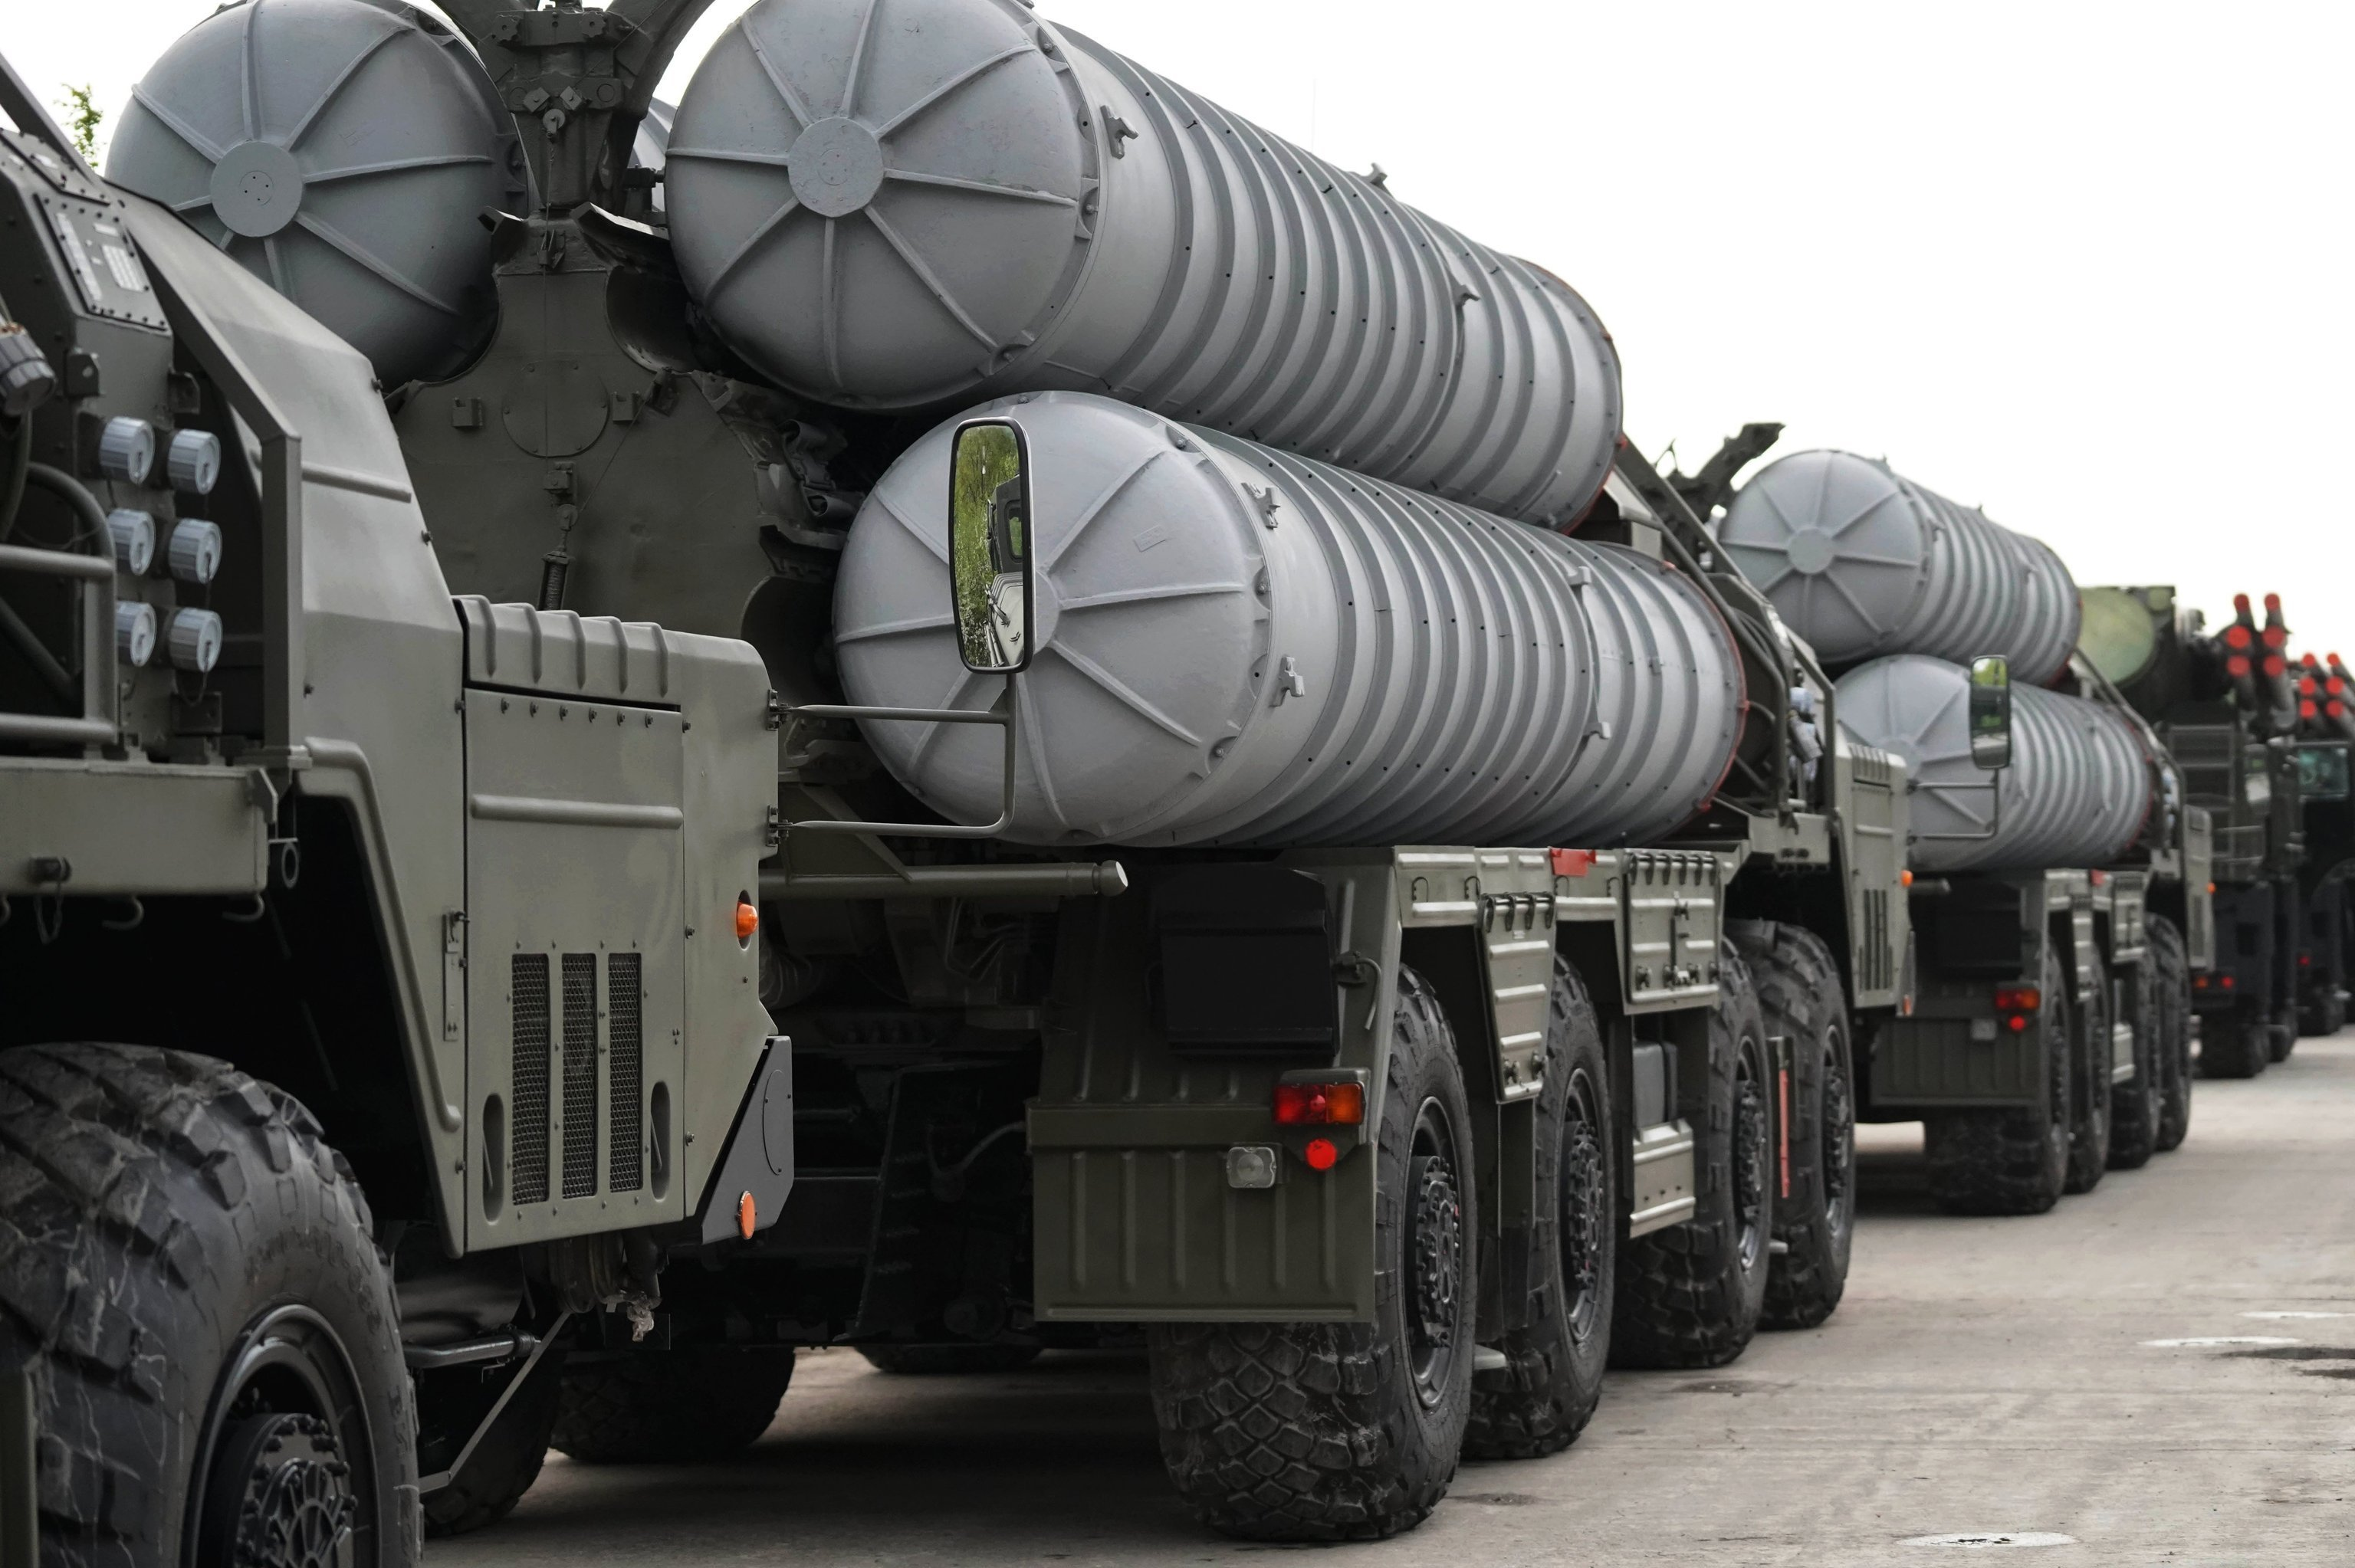 An S-400 anti-aircraft missile system during the preparation of military equipment for the military parade marking the 73rd anniversary of the victory in the Great Patriotic War, in Kaliningrad